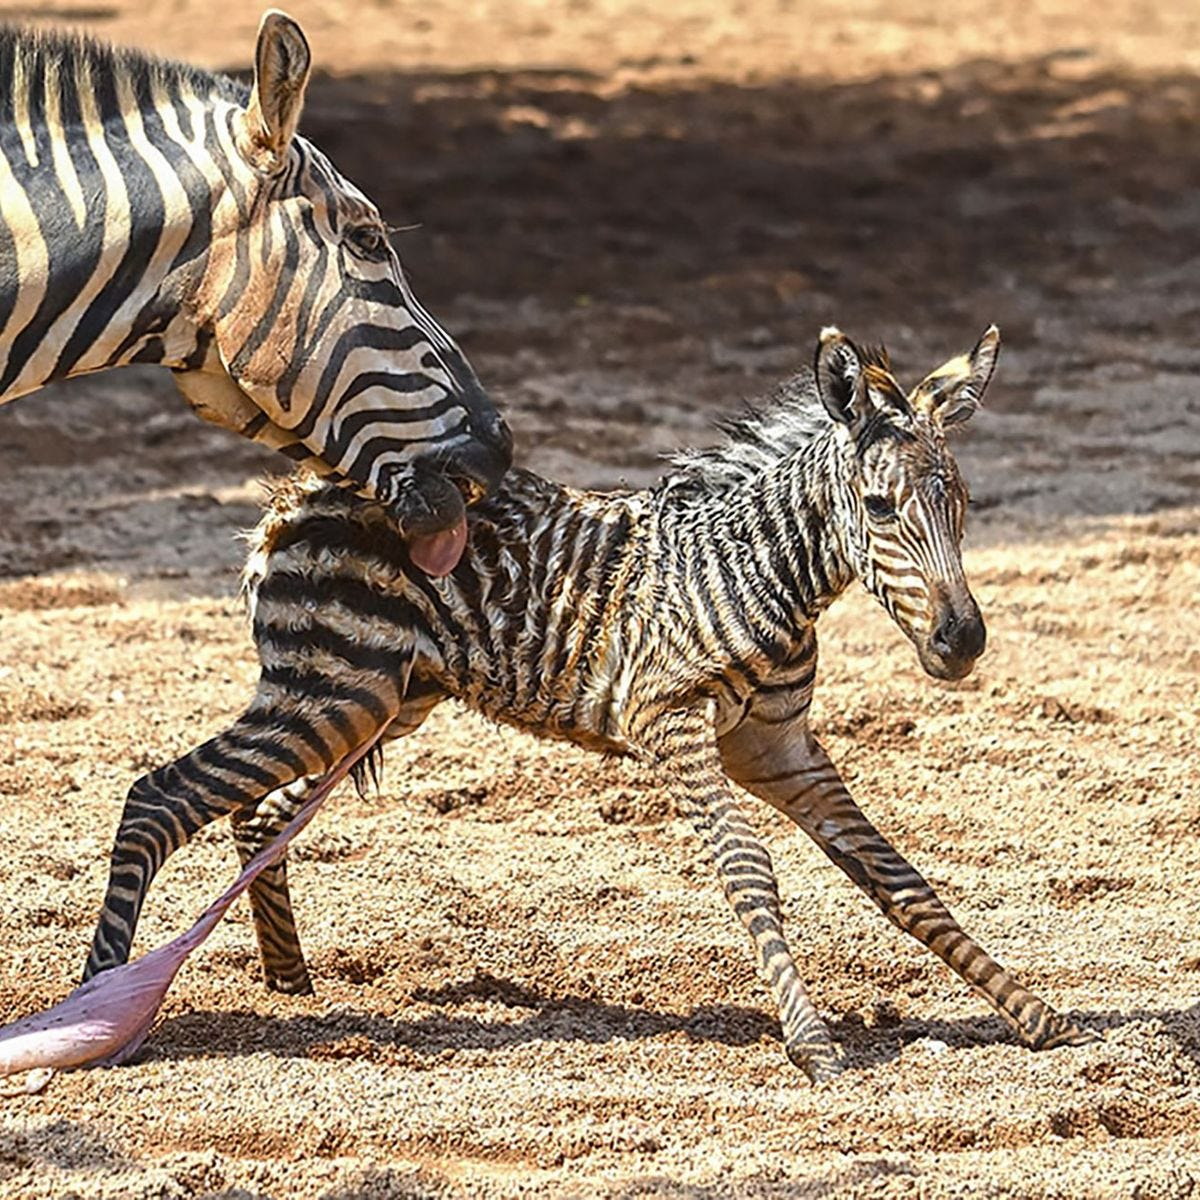 Newborn zebra's life saved by zookeepers as it starts to drown seconds  after birth - World News - Mirror Online